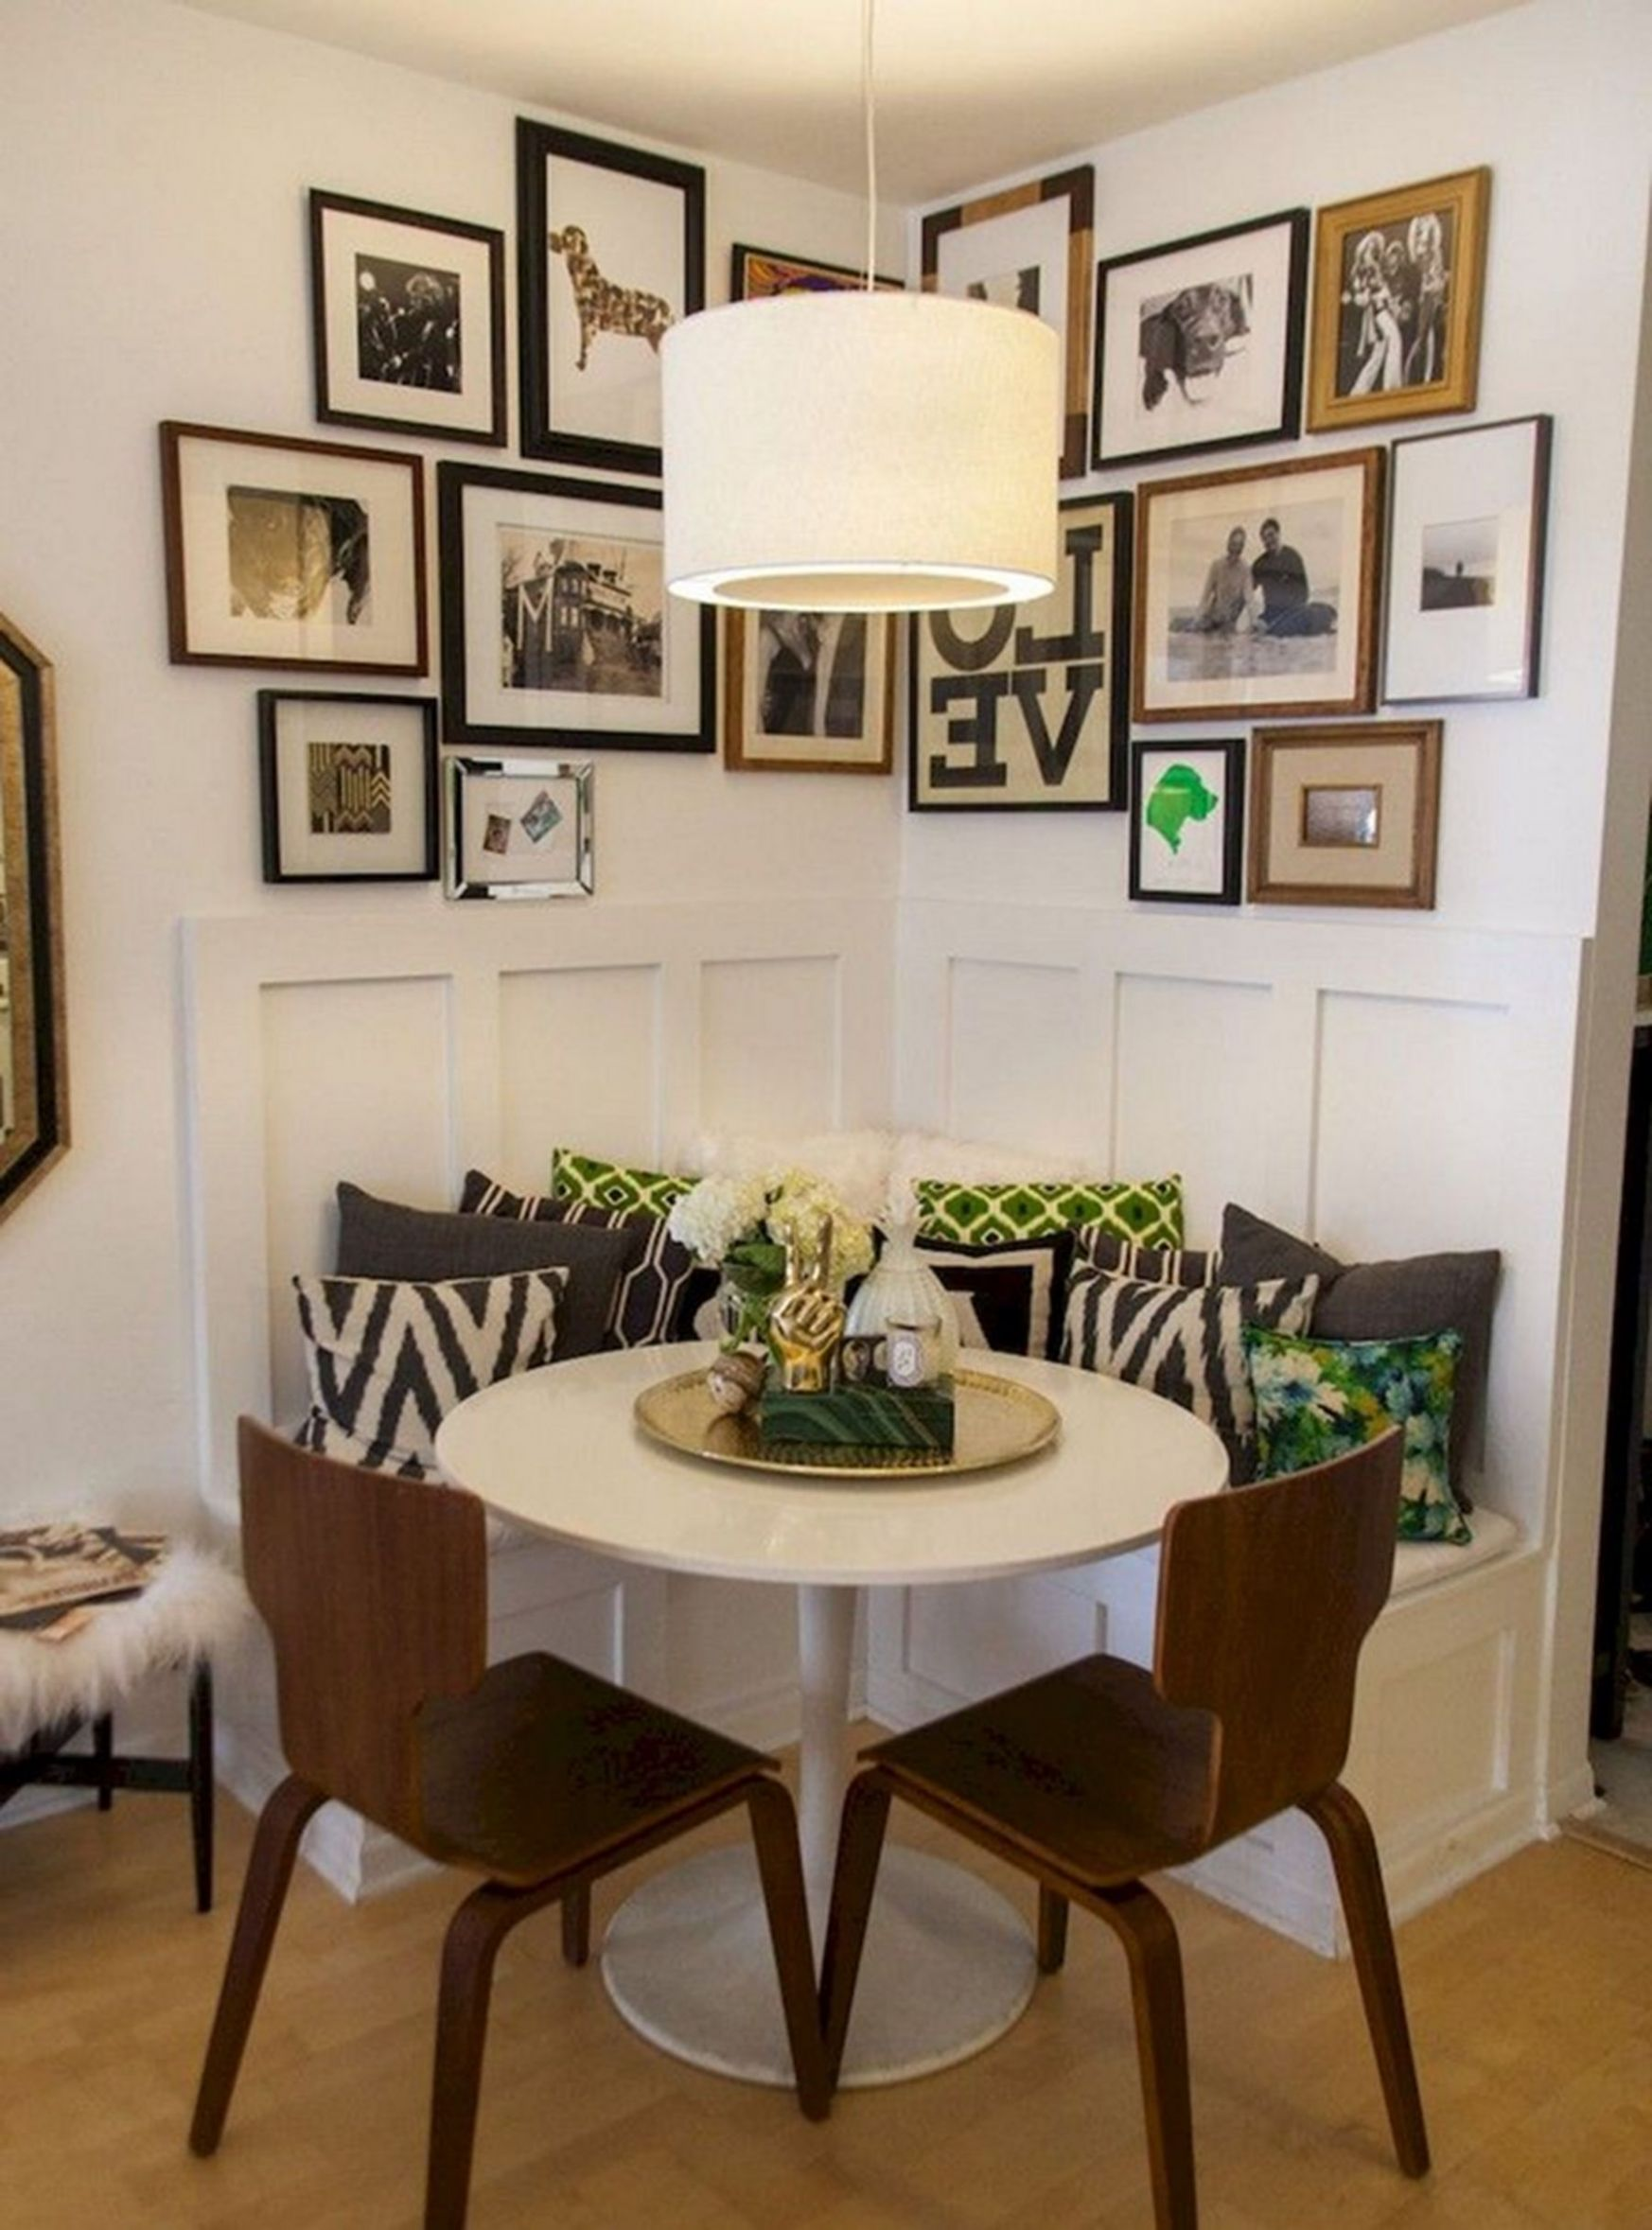 12 Small Dining Room Design Ideas For Your Favorite Minimalist ...